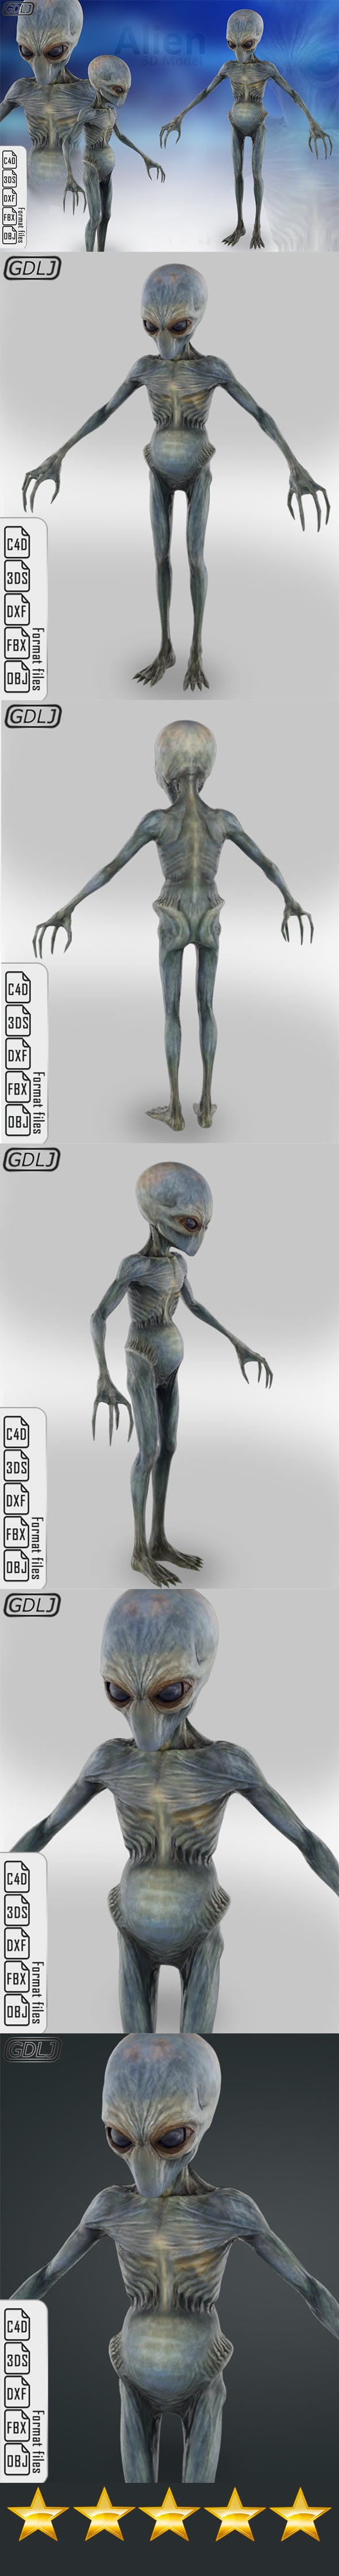 Alien 3D Character [ High poly and Low poly ] - 3DOcean Item for Sale